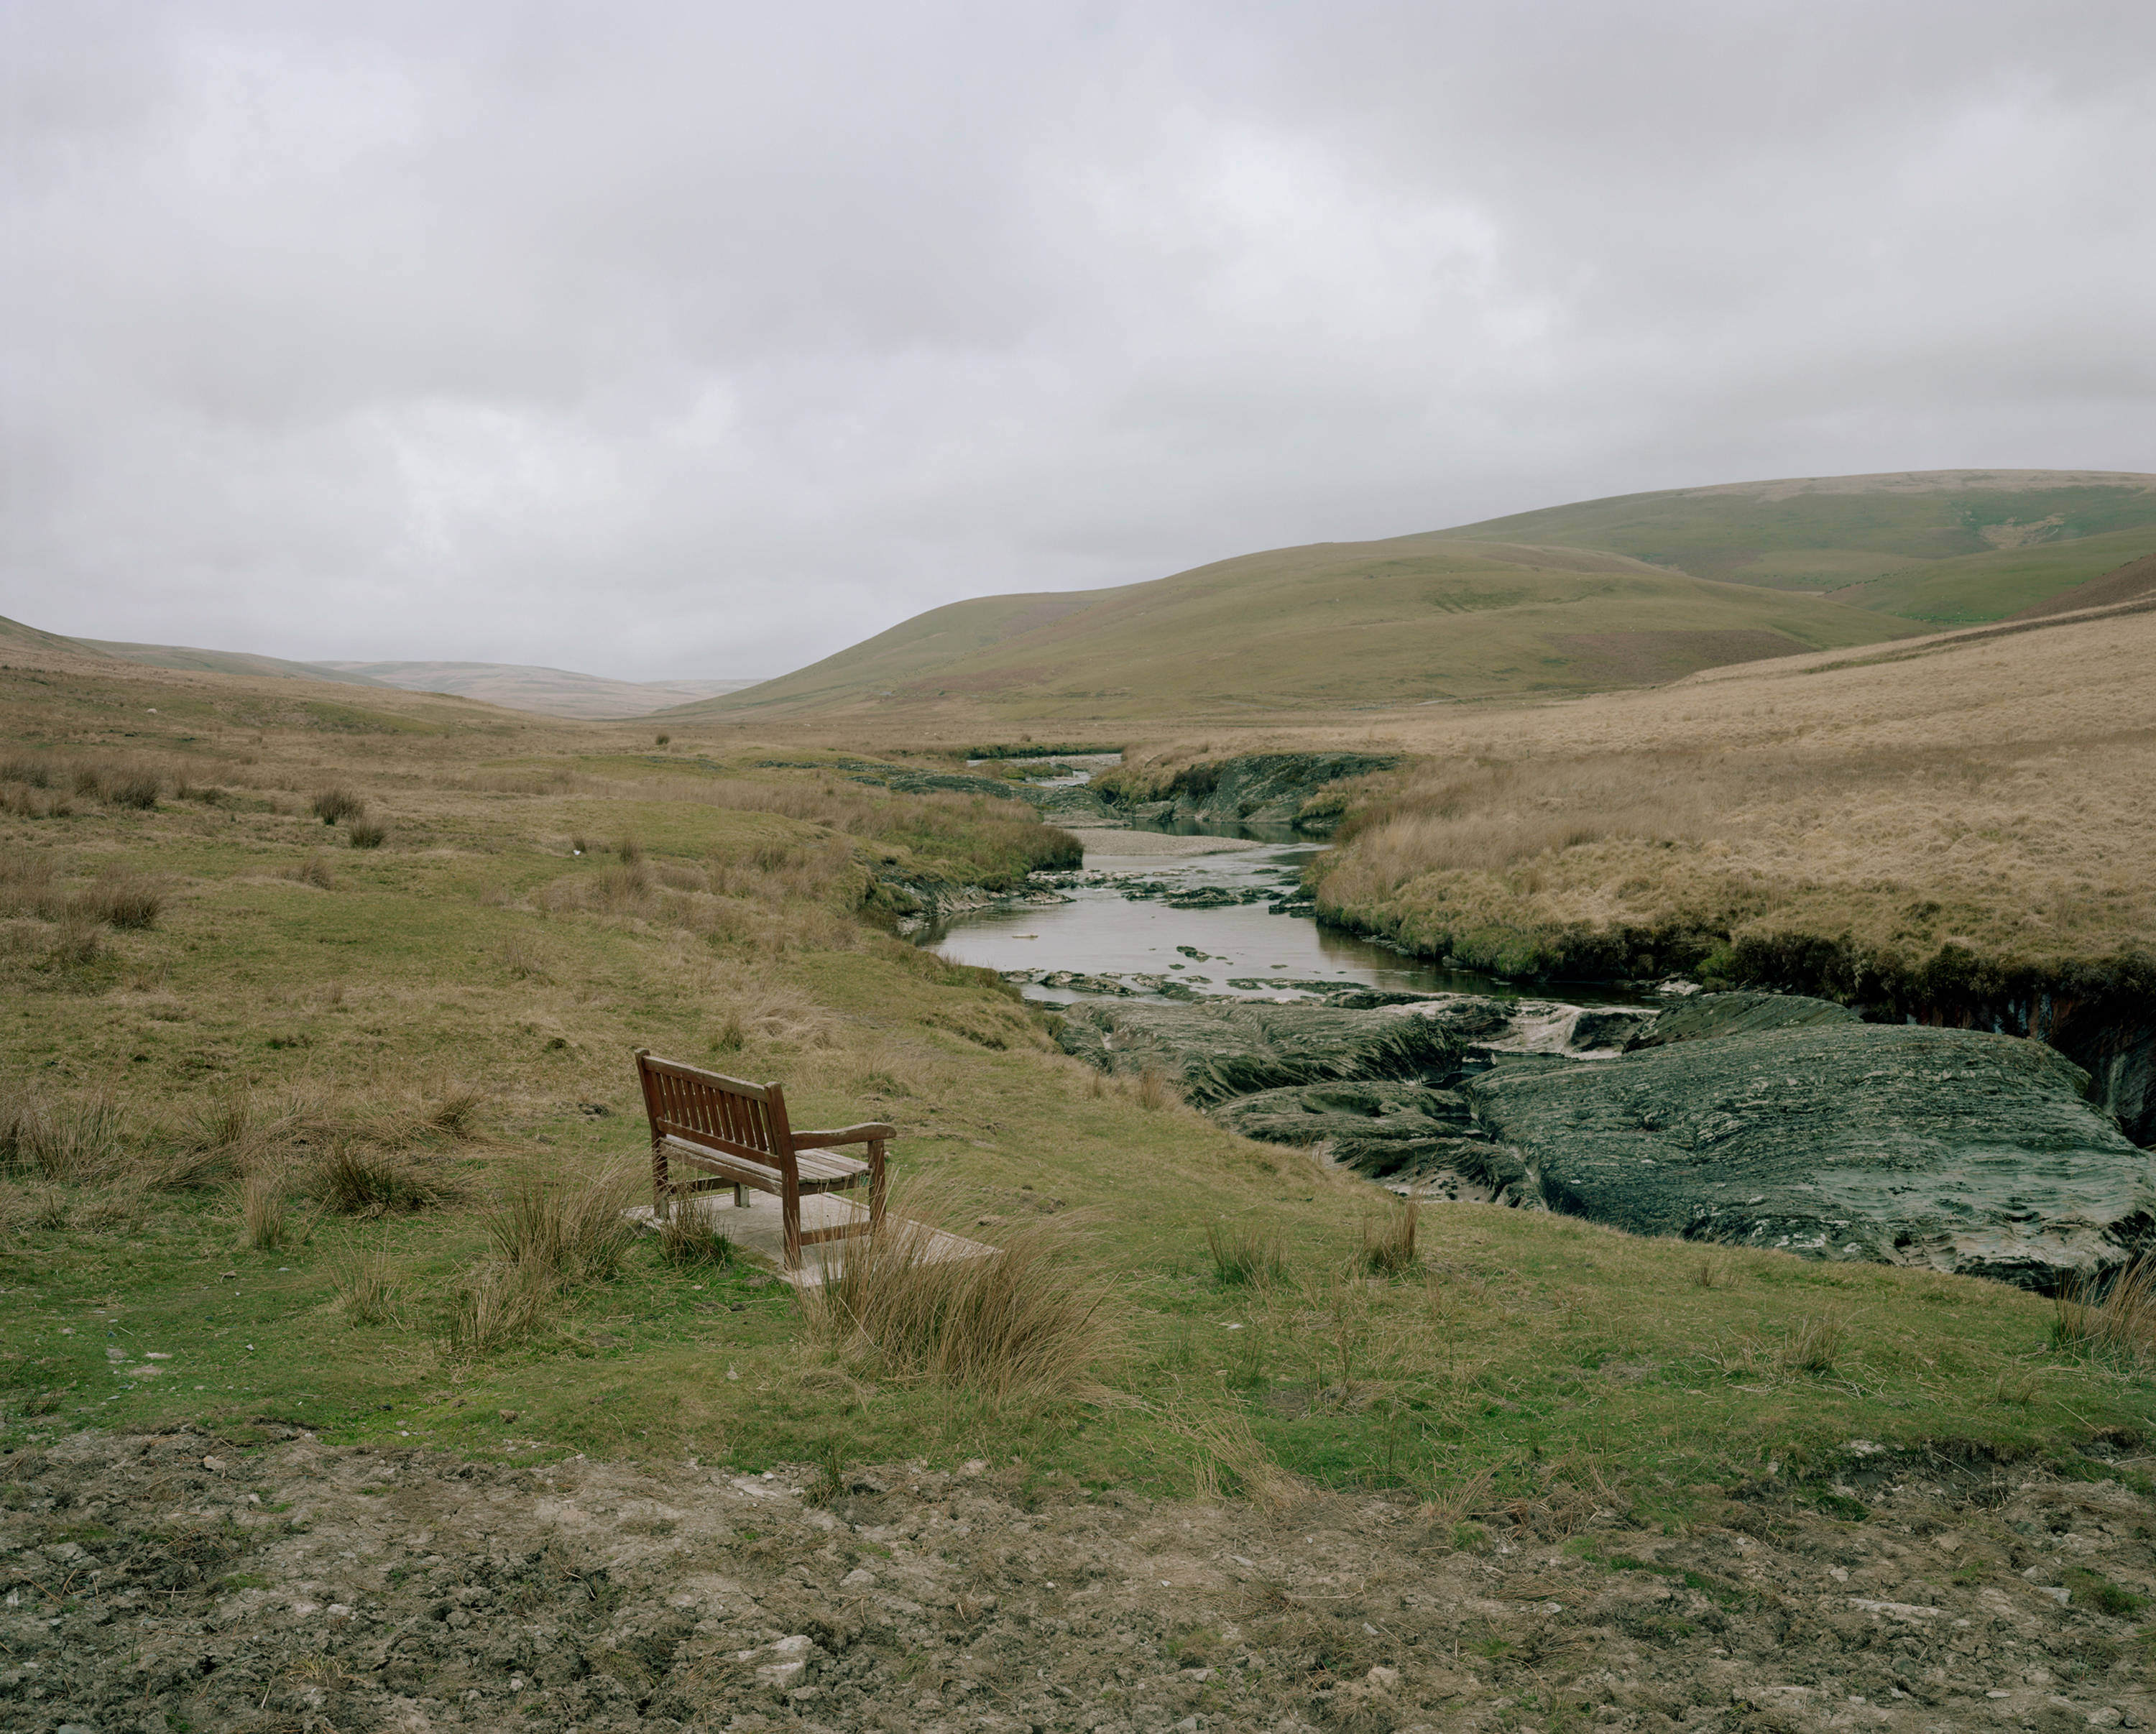 Photograph of a wooden bench in a grassy field aside a river